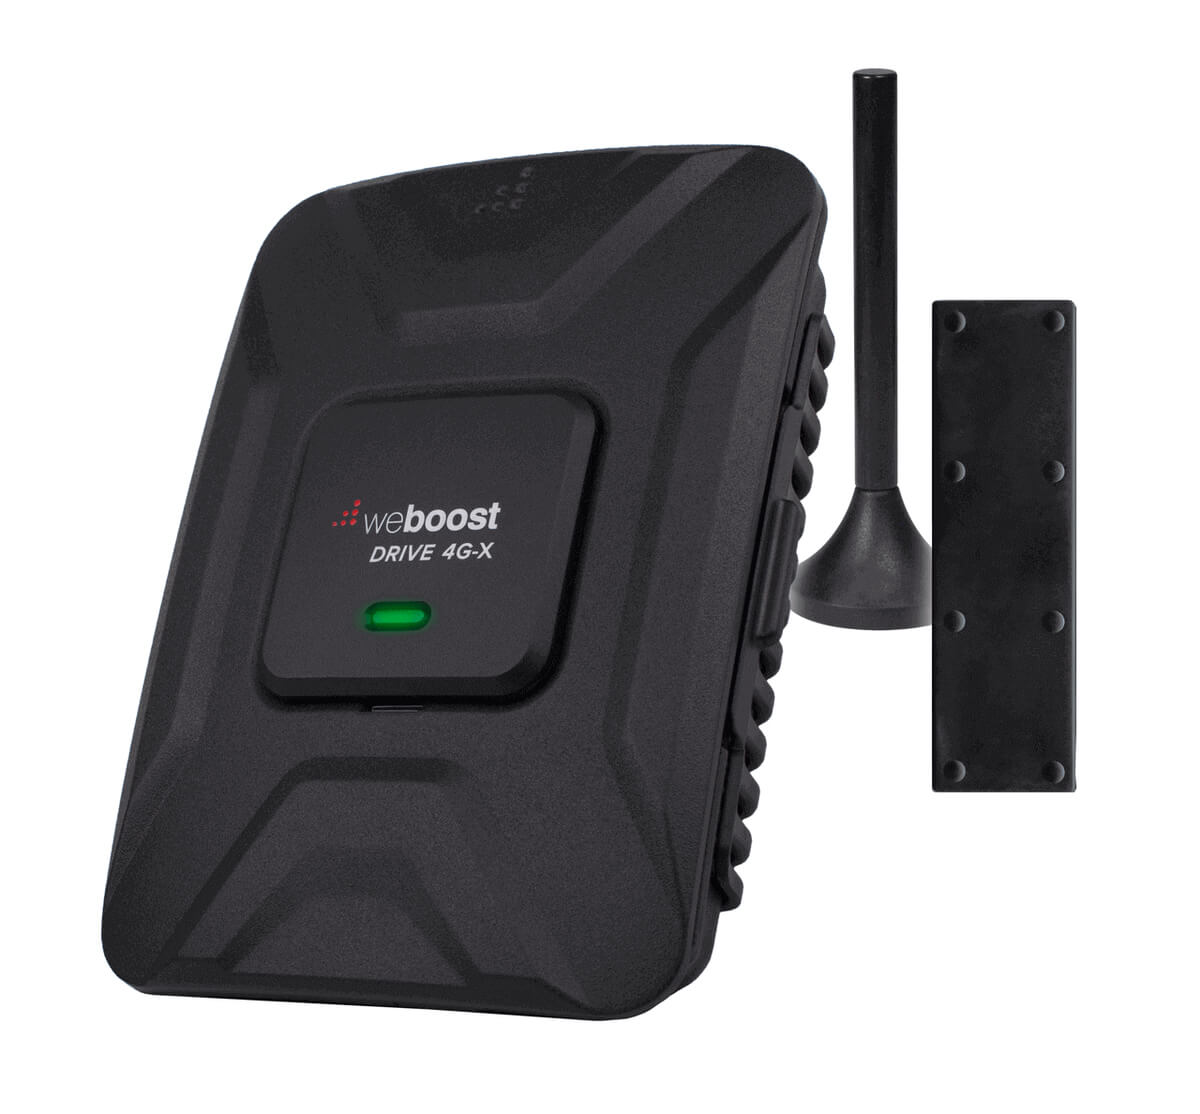 weboost 470510 drive 4g x signal booster